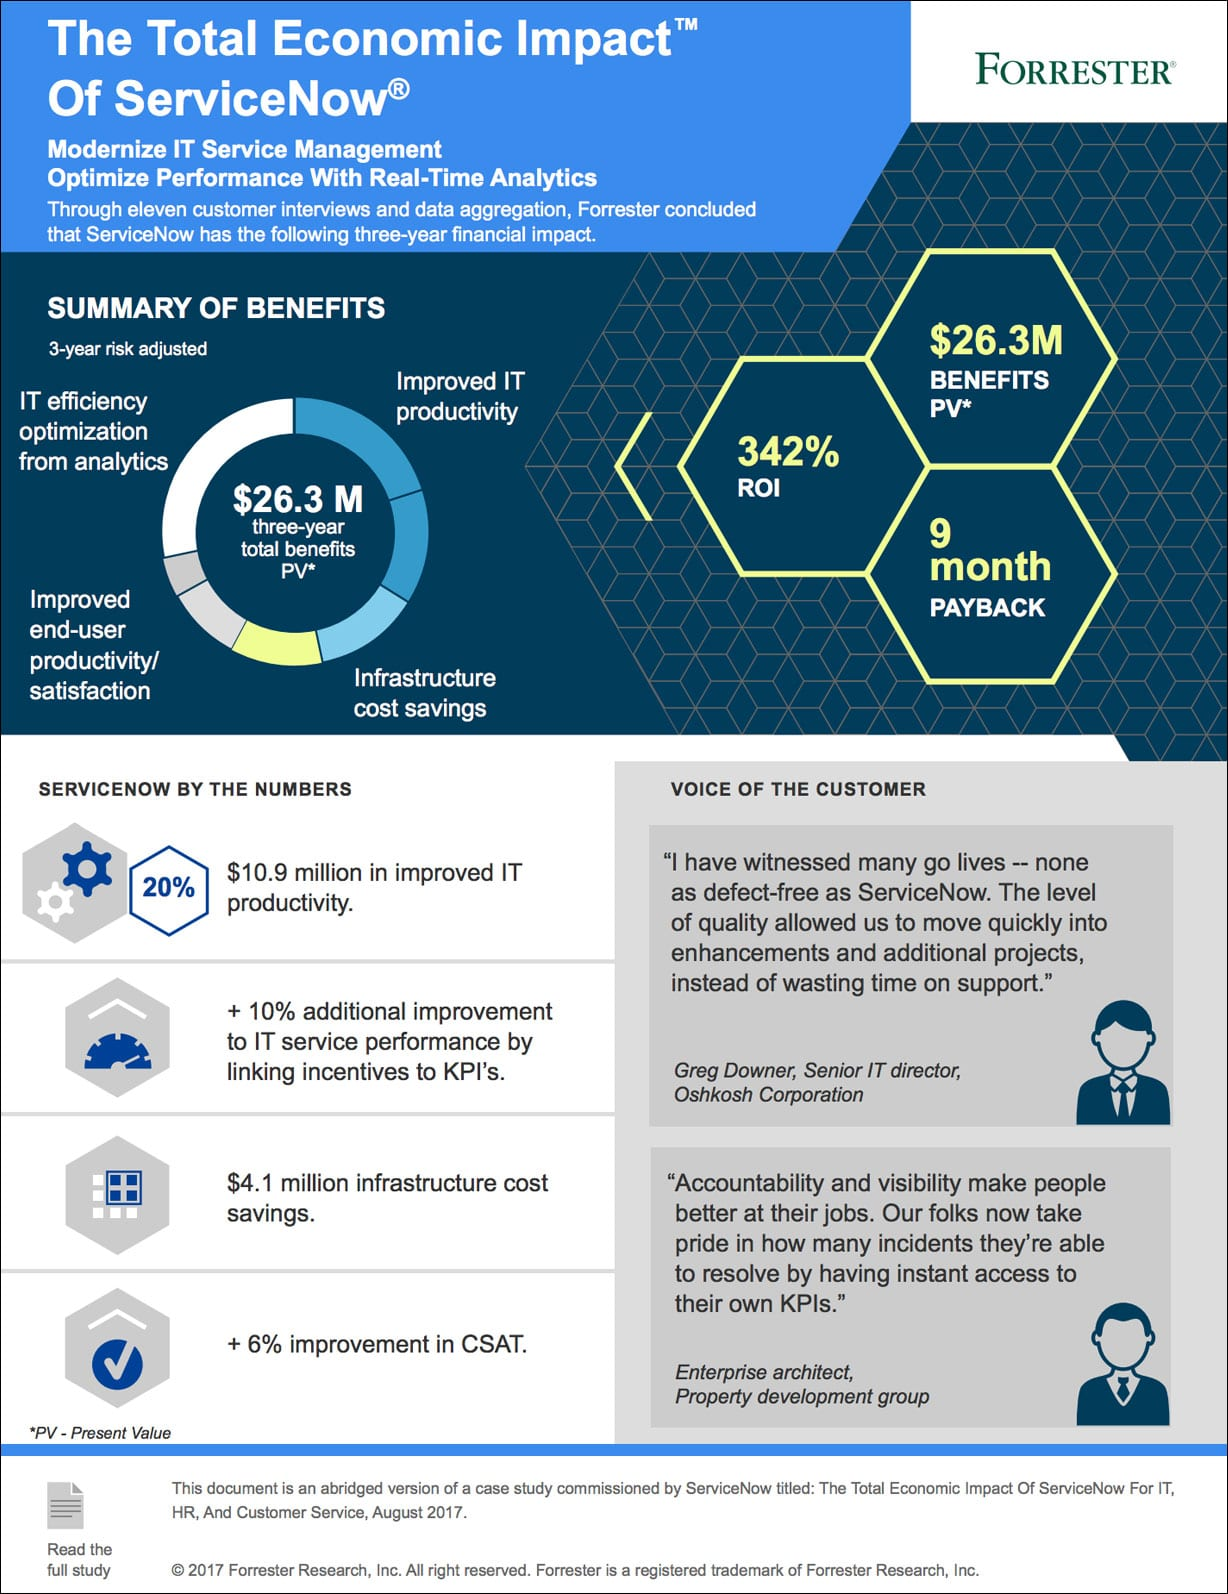 Total economic impact of servicenow by forrester consulting it fandeluxe Images